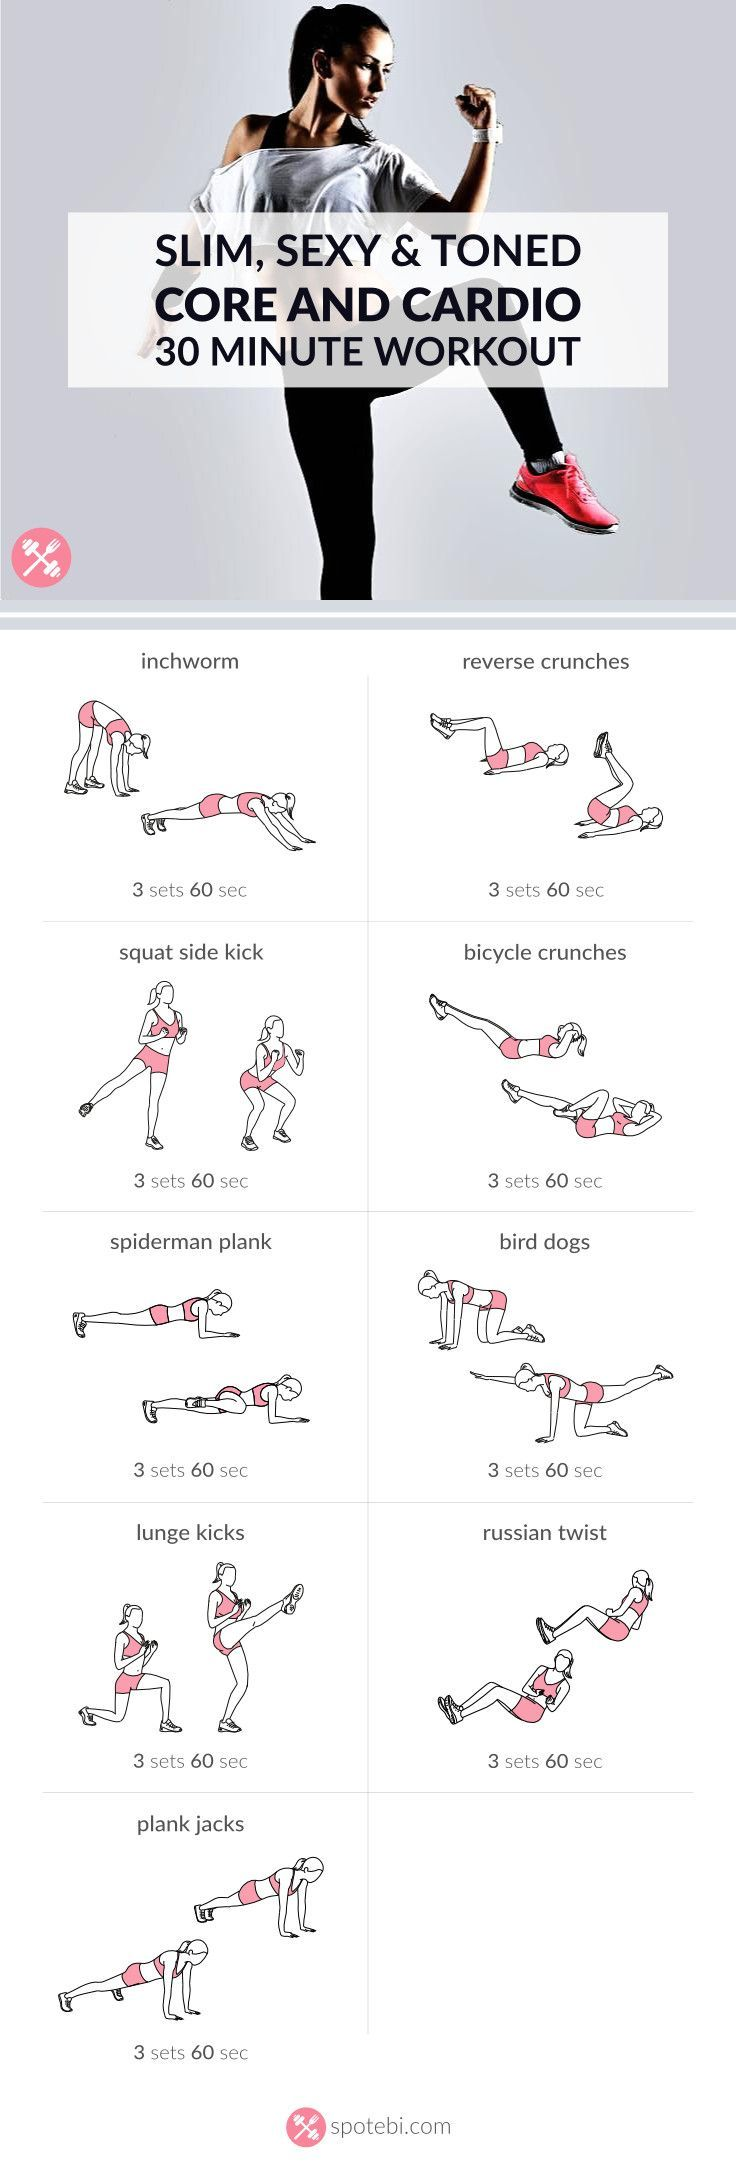 25+ best ideas about Cardio at home on Pinterest | Cardio workouts at home, Home cardio and ...